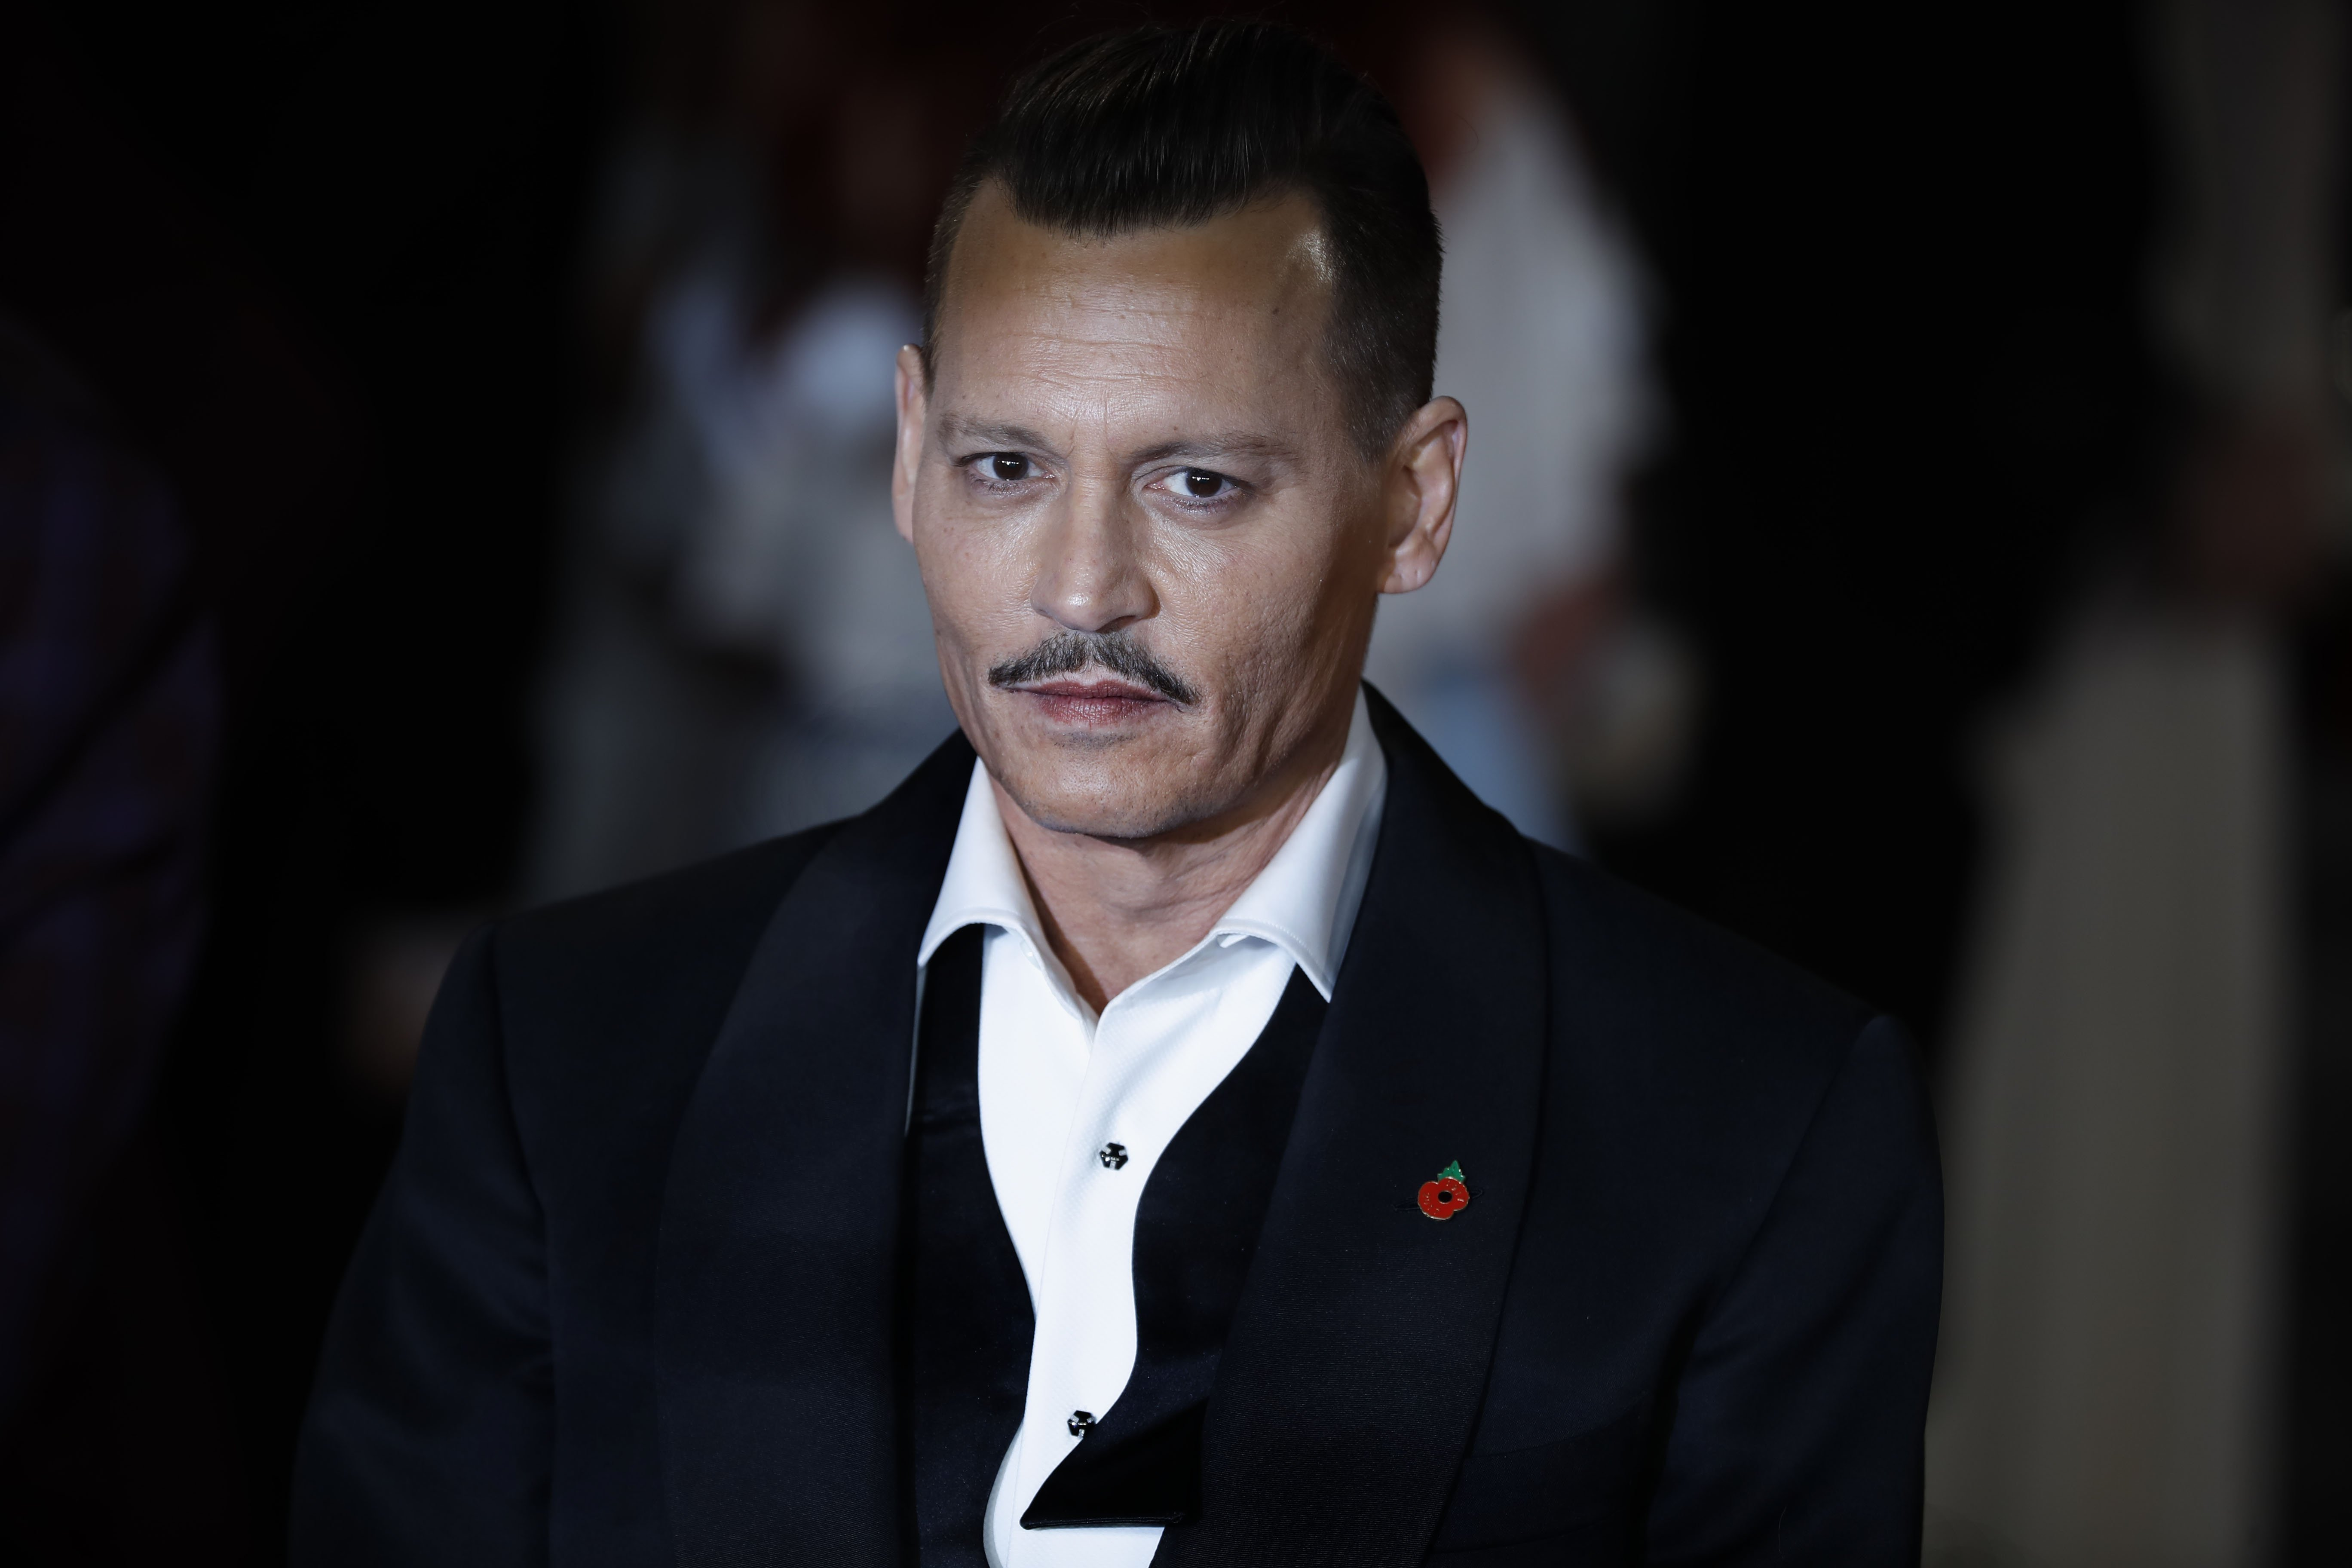 US actor Johnny Depp poses upon arrival to attend the world premiere of the film 'Murder on the Orient Express' at the Royal Albert Hall in west London on November 2, 2017. / AFP PHOTO / Tolga AKMENTOLGA AKMEN/AFP/Getty Images